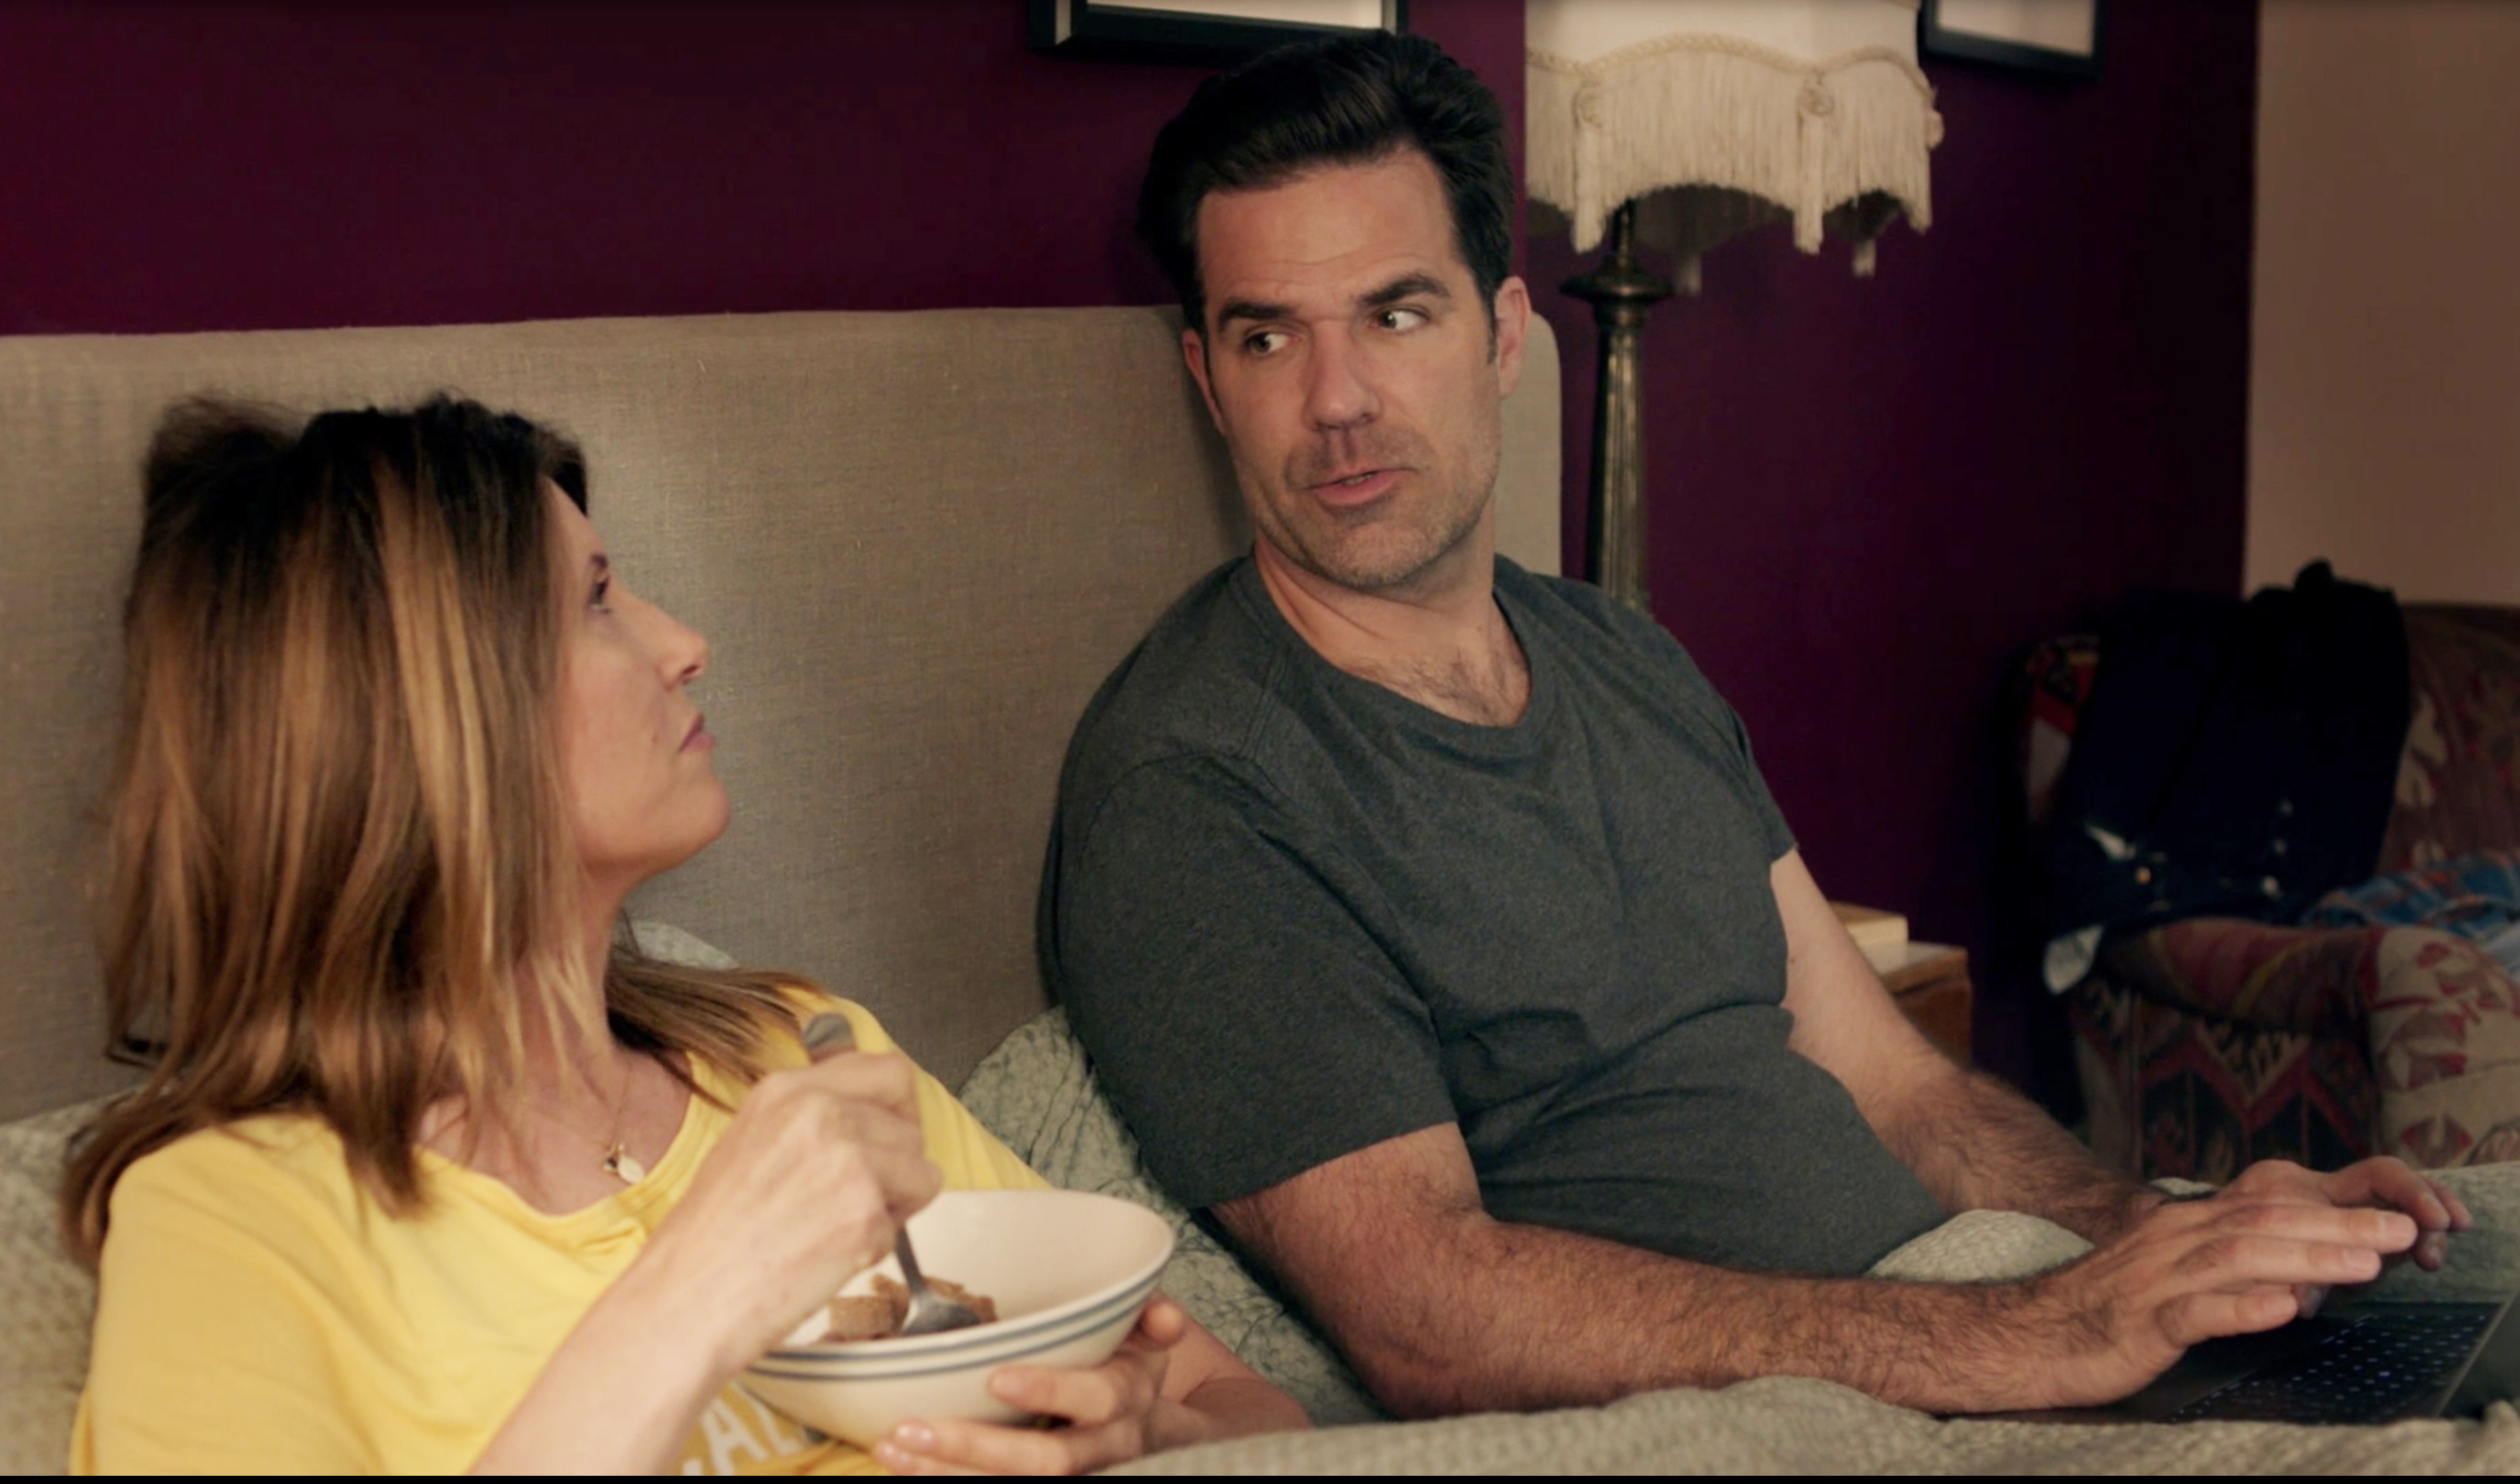 Order a Second Dessert and Say Farewell to Amazon Prime's 'Catastrophe'